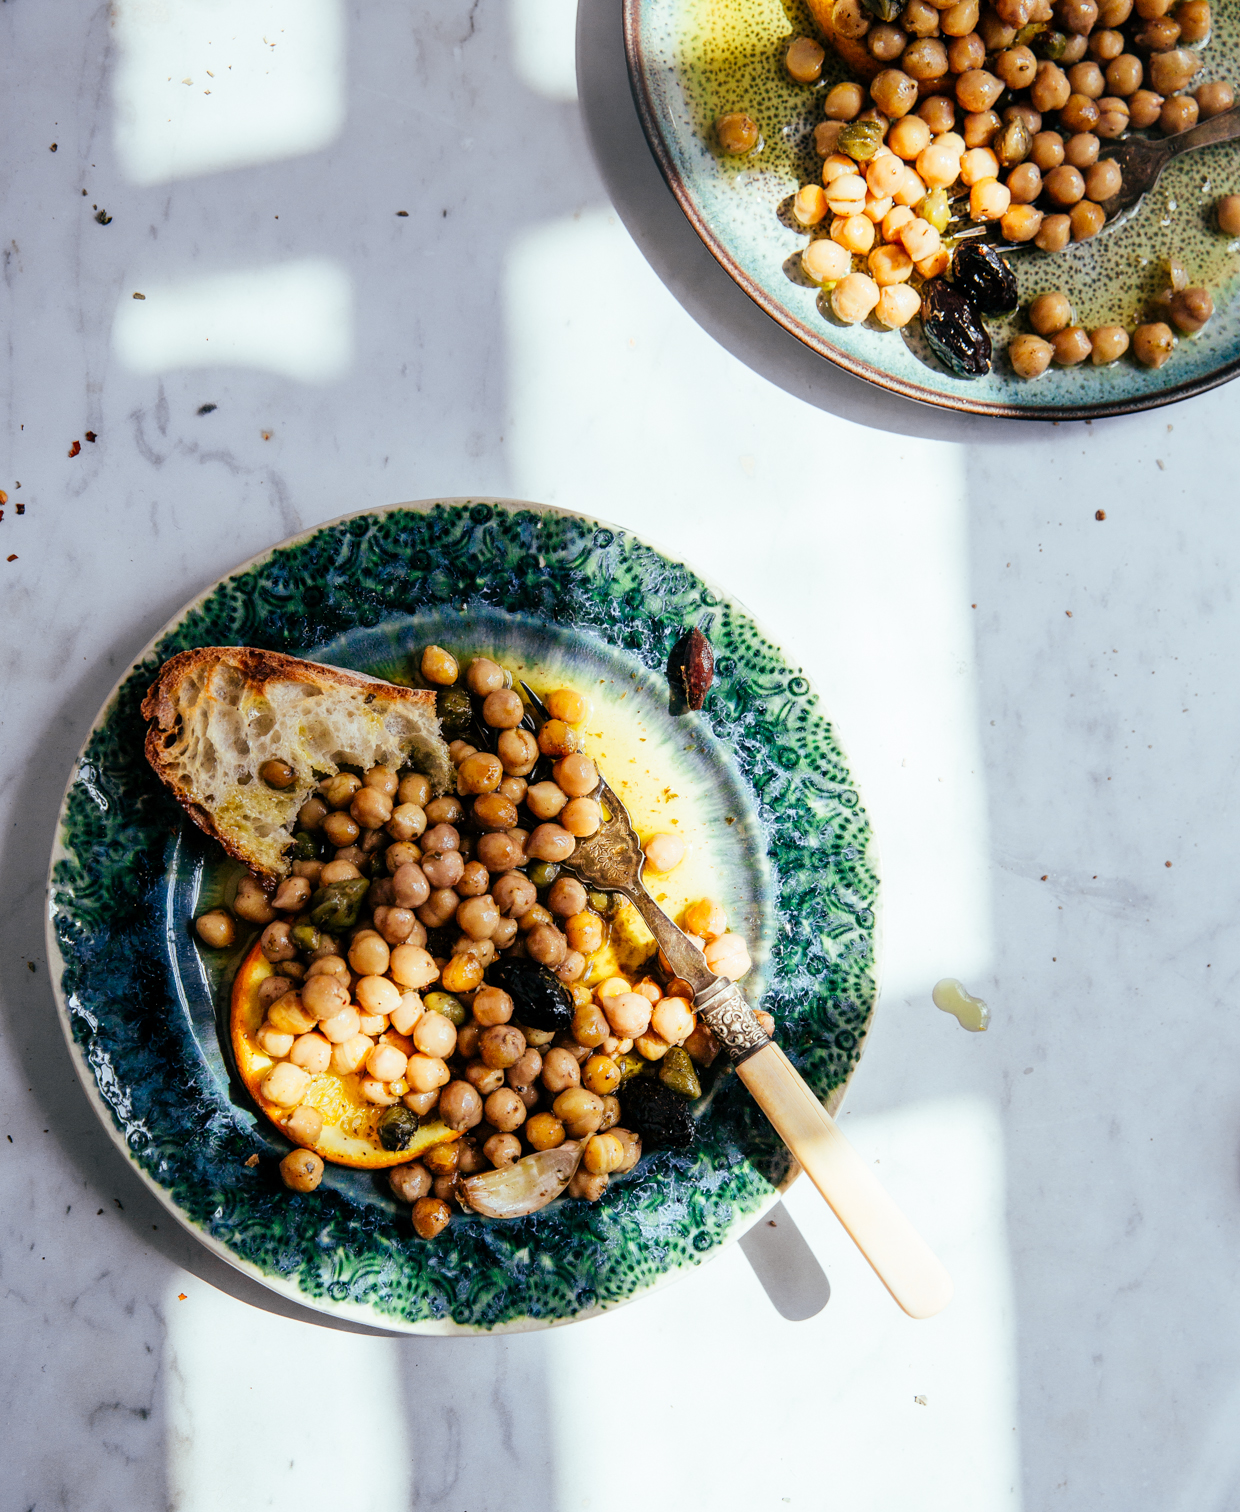 Baked chickpeas with capers, olives & orange